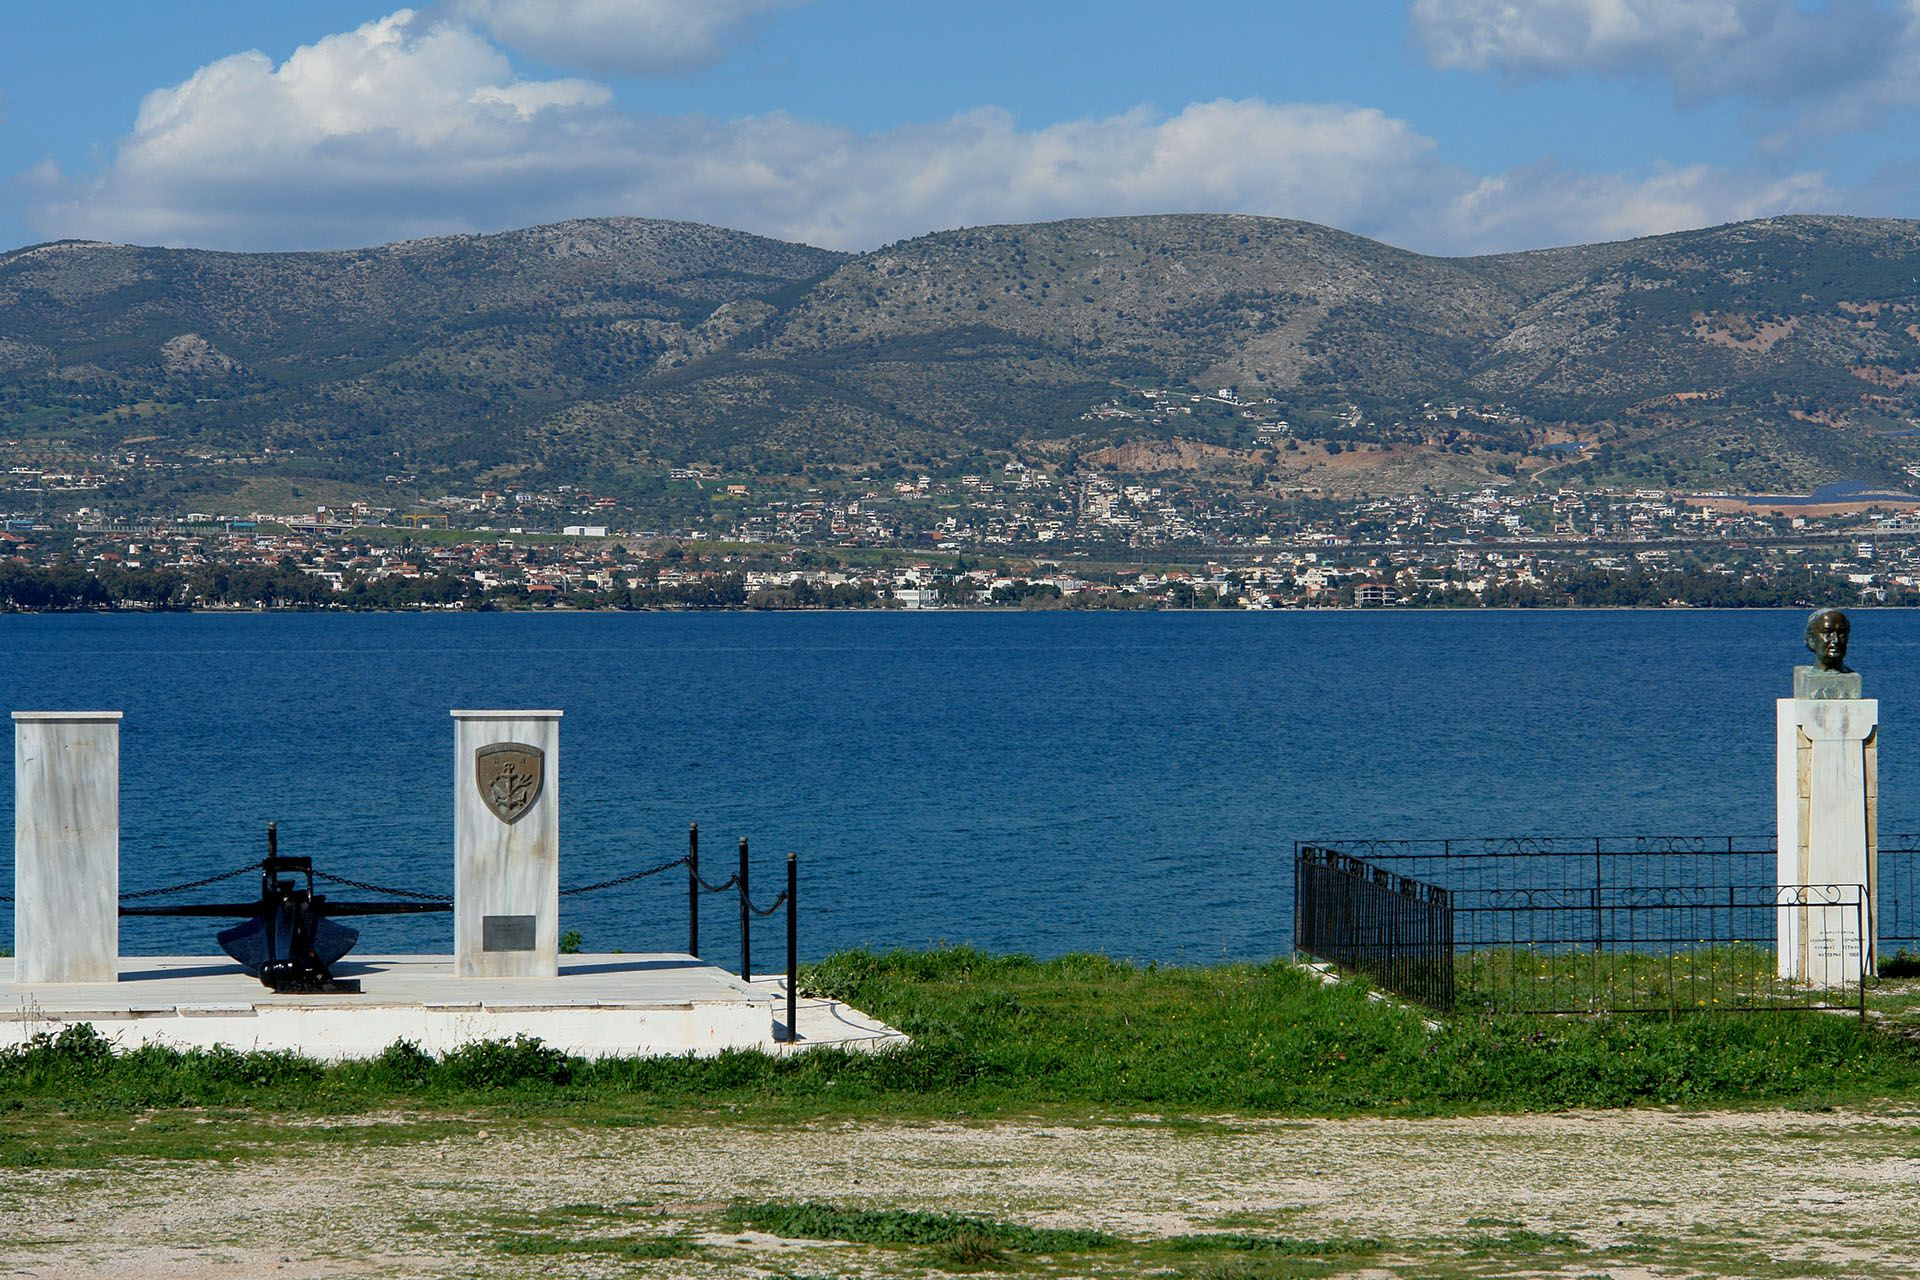 Salamina, Salamina, Sea, Beaches, Monasteries, Attica, Salamina - The easiest island to get to, Salamina - The island neighborhood of Piraeus